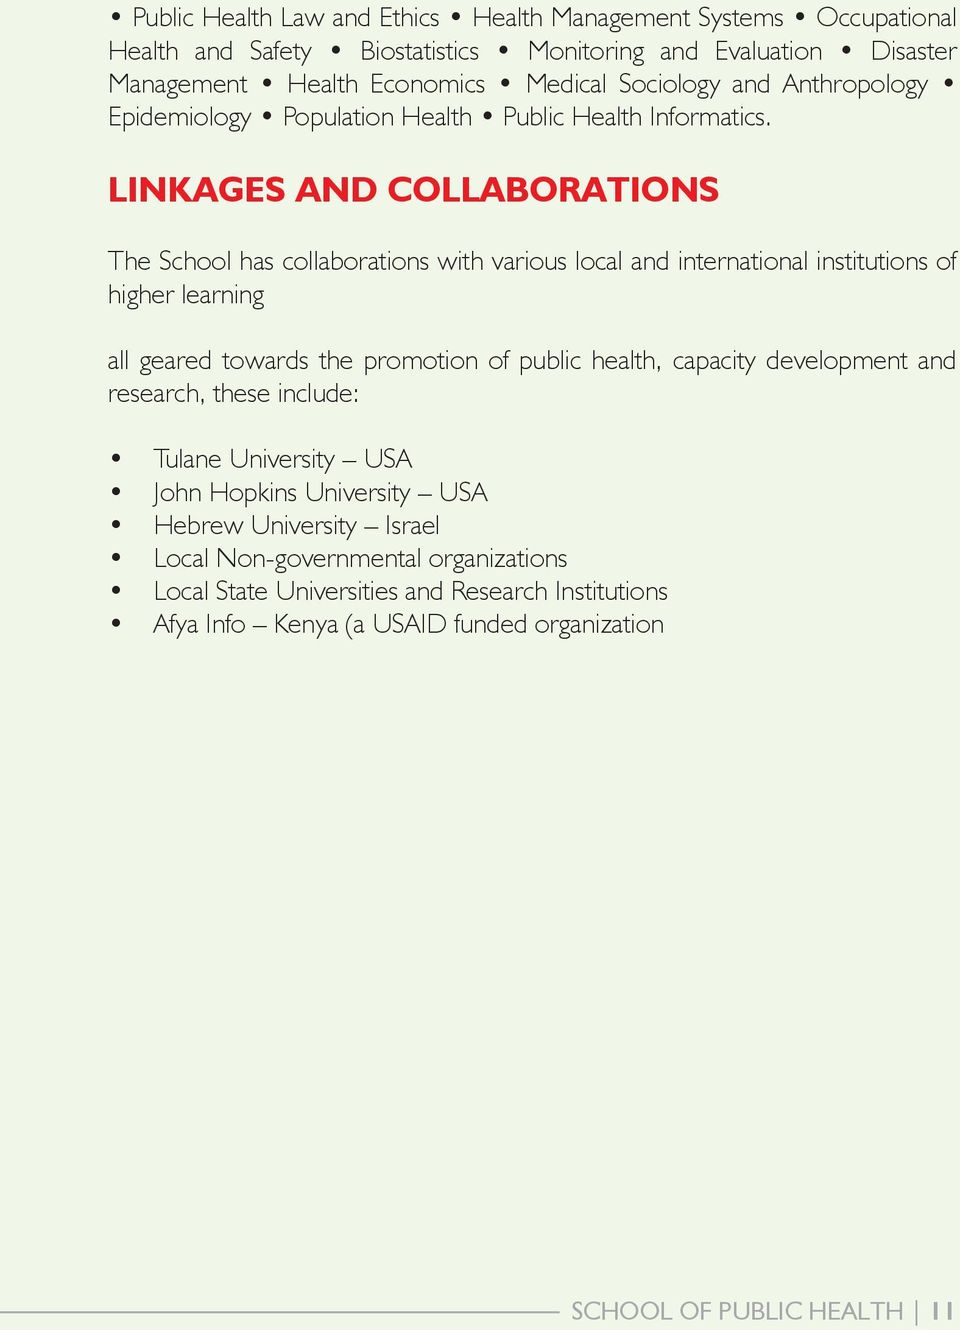 LINKAGES AND COLLABORATIONS The School has collaborations with various local and international institutions of higher learning all geared towards the promotion of public health,